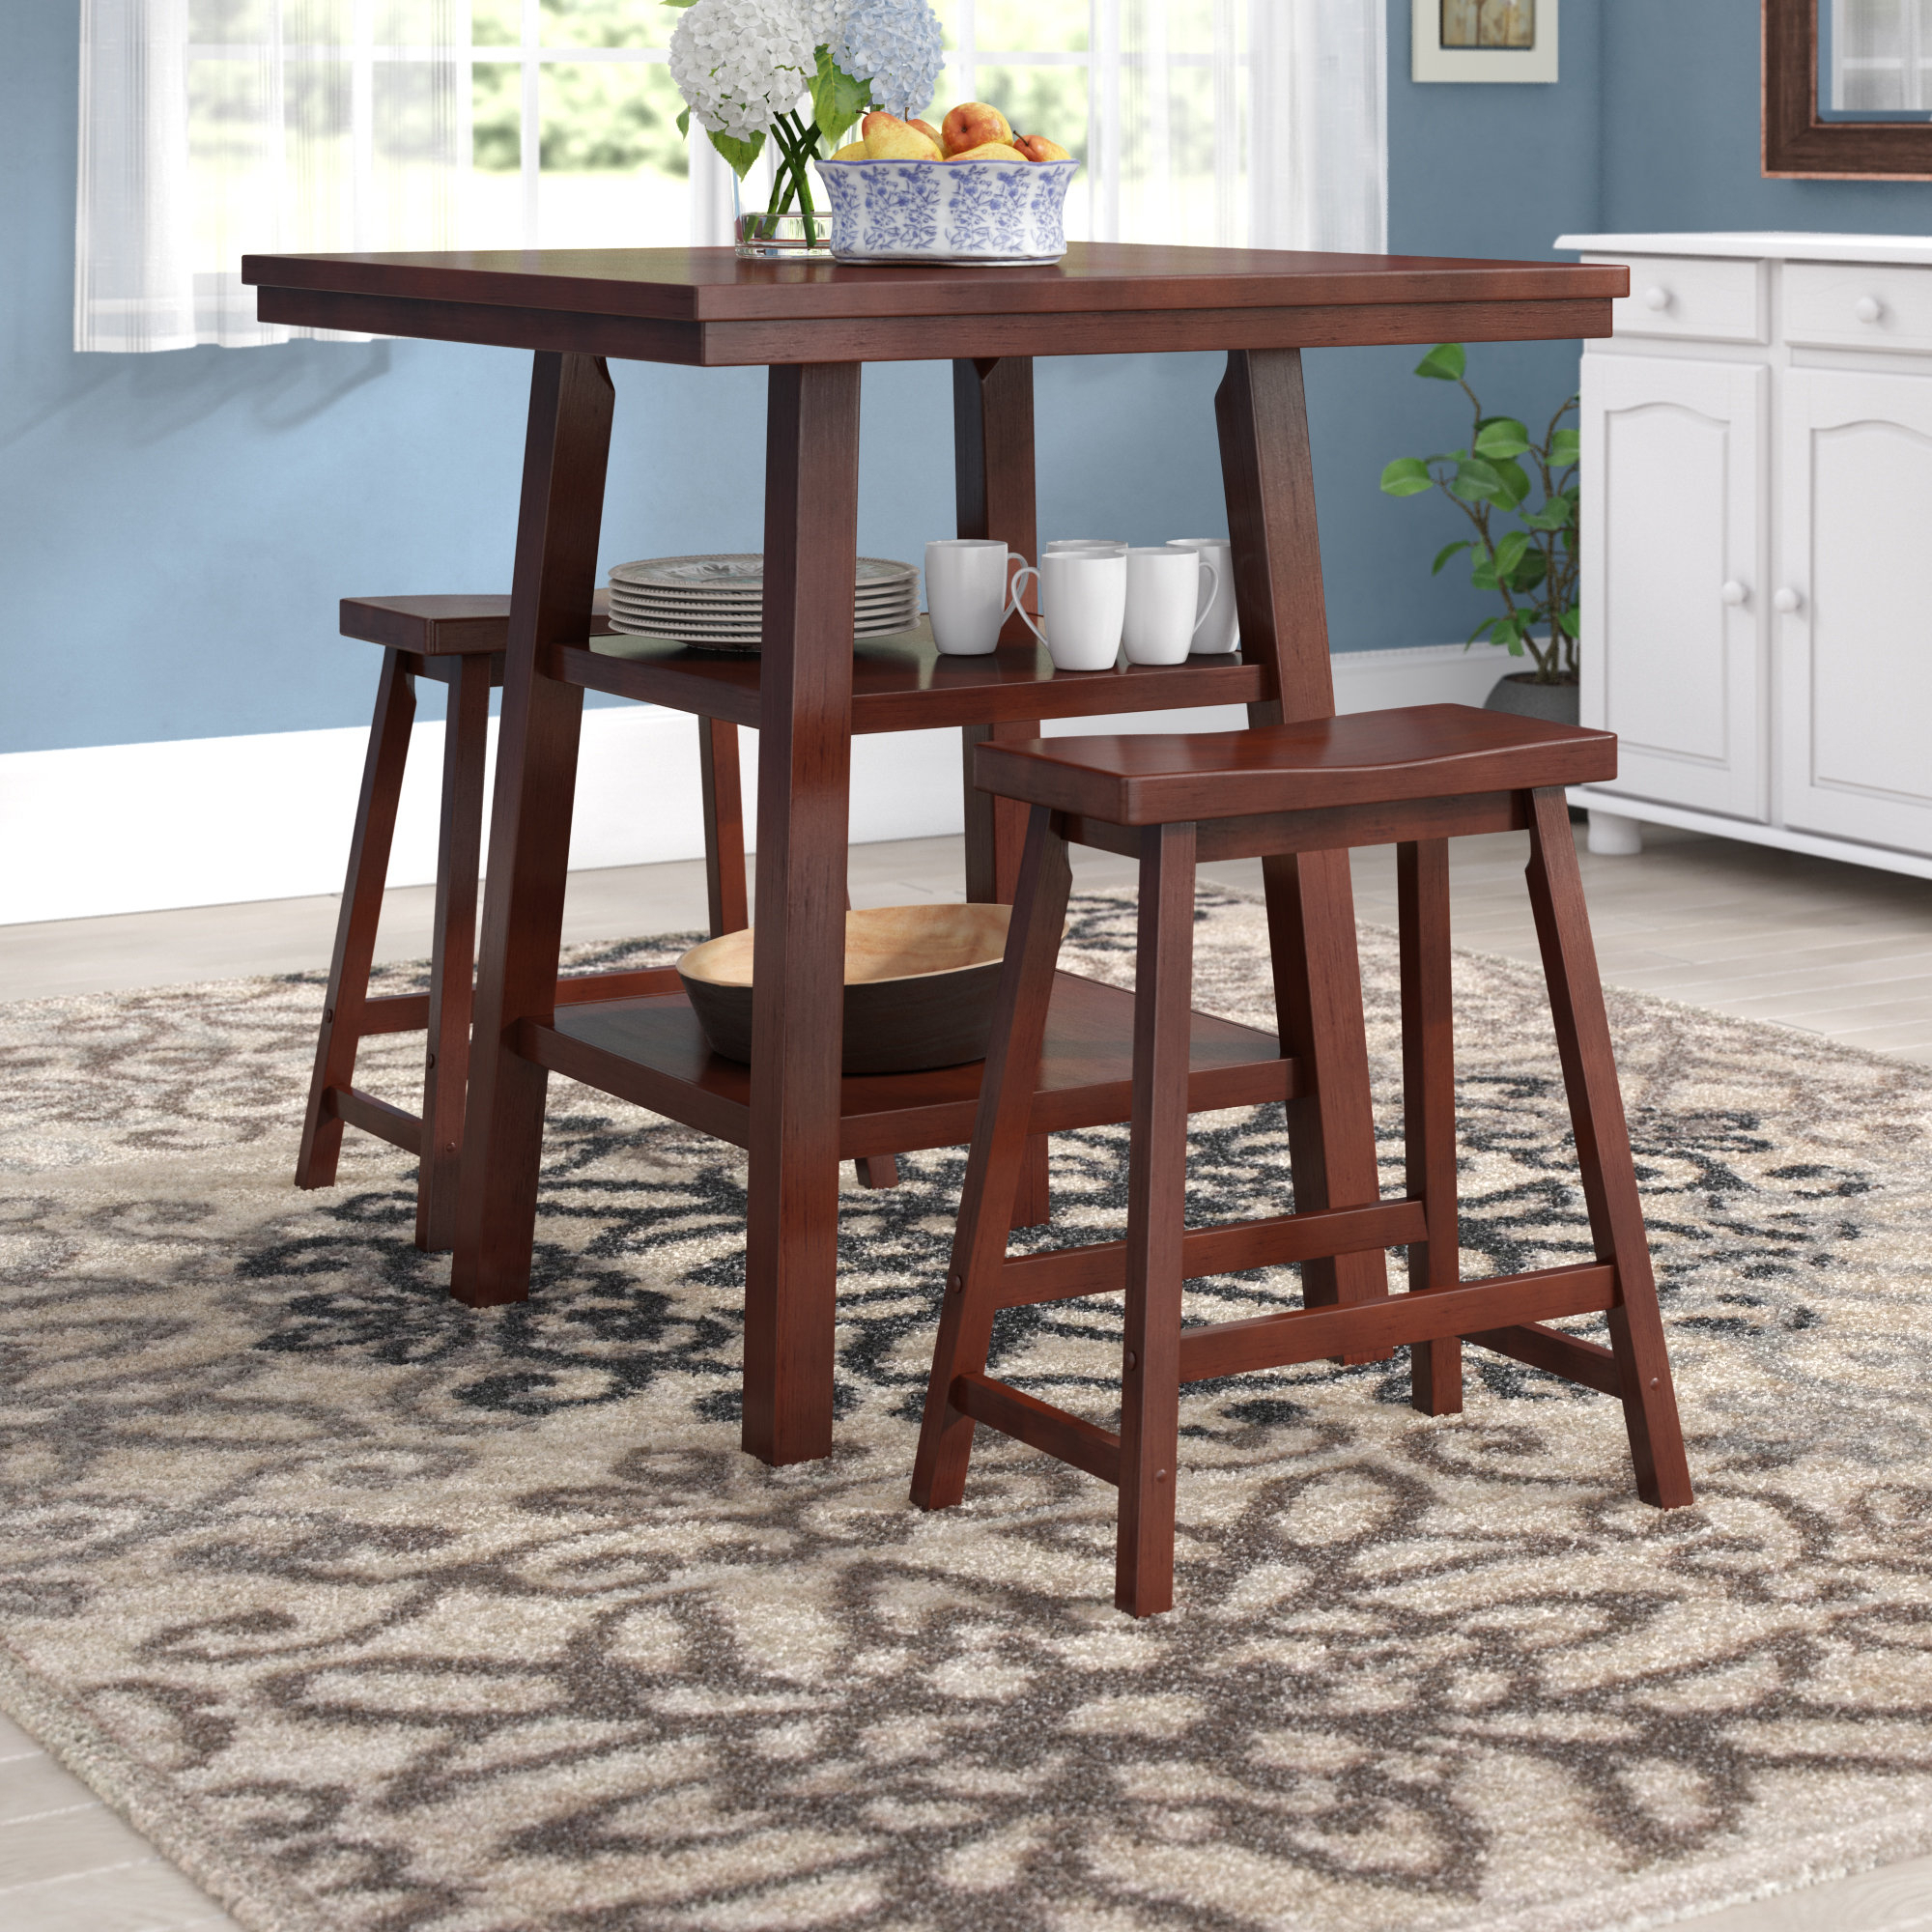 Pratt Street 3 Piece Dining Set Inside Most Recently Released Lonon 3 Piece Dining Sets (View 8 of 20)